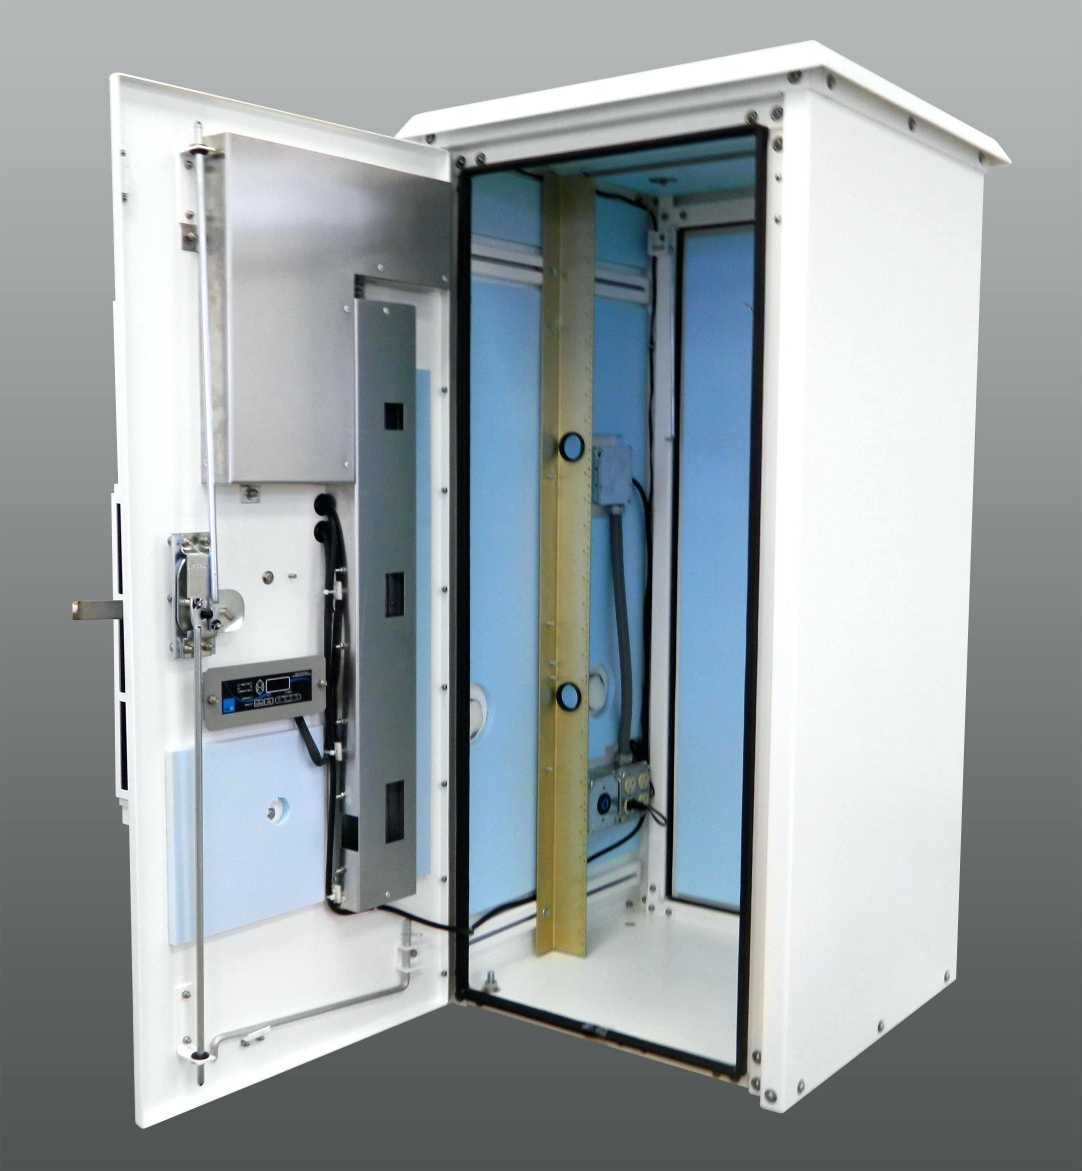 Outdoor Tankless Water Heater Enclosure Designs